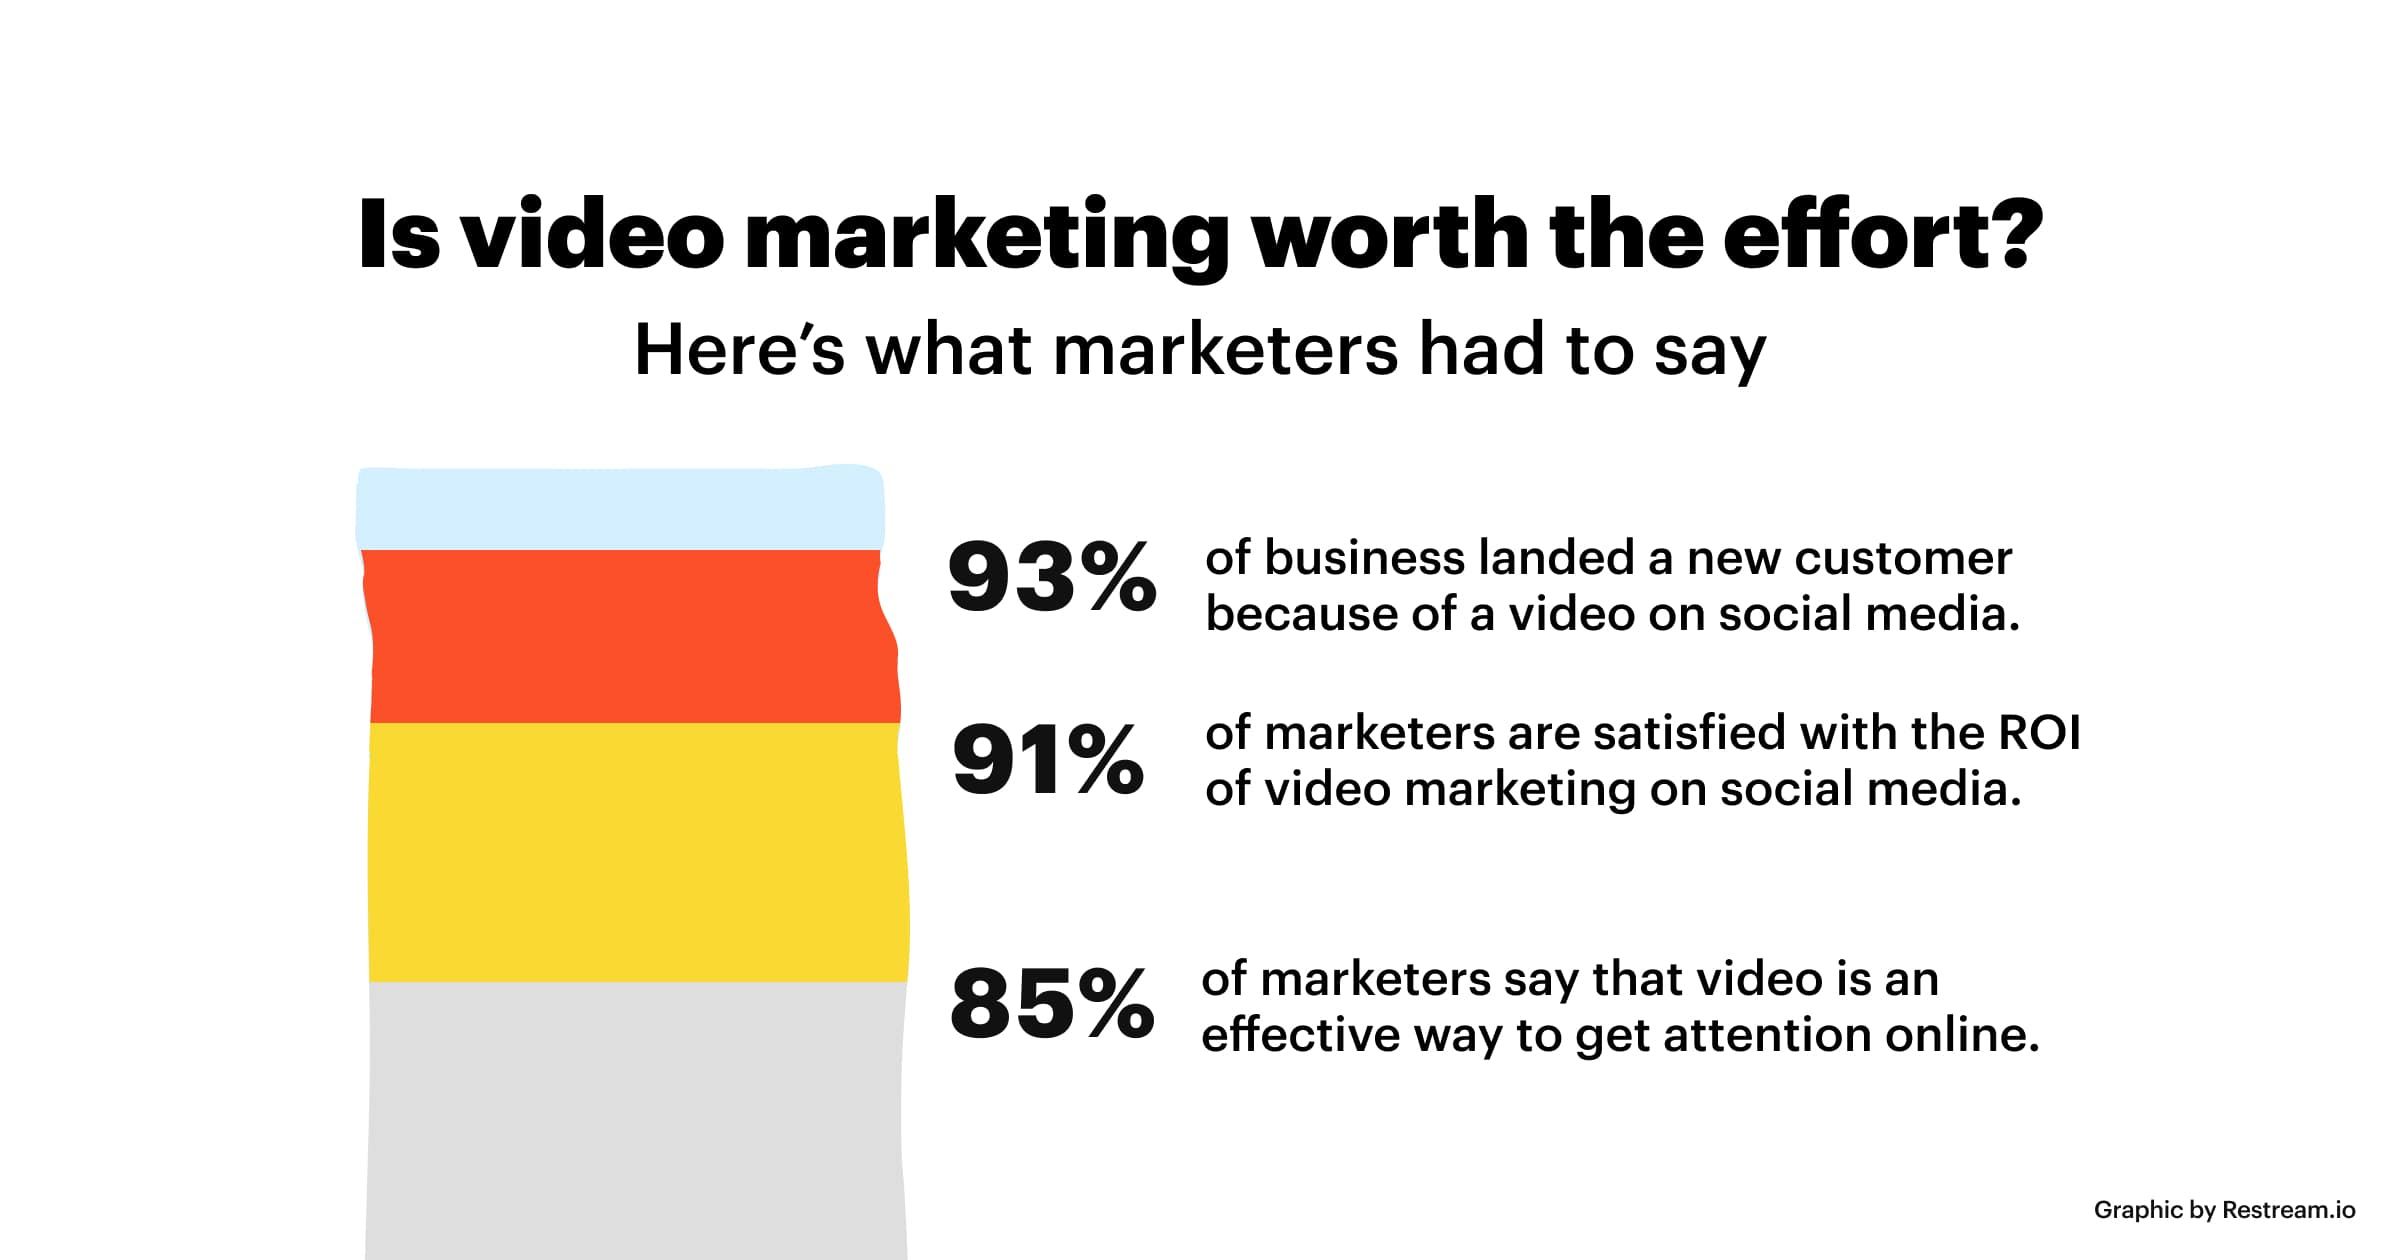 Is video marketing worth the effort?